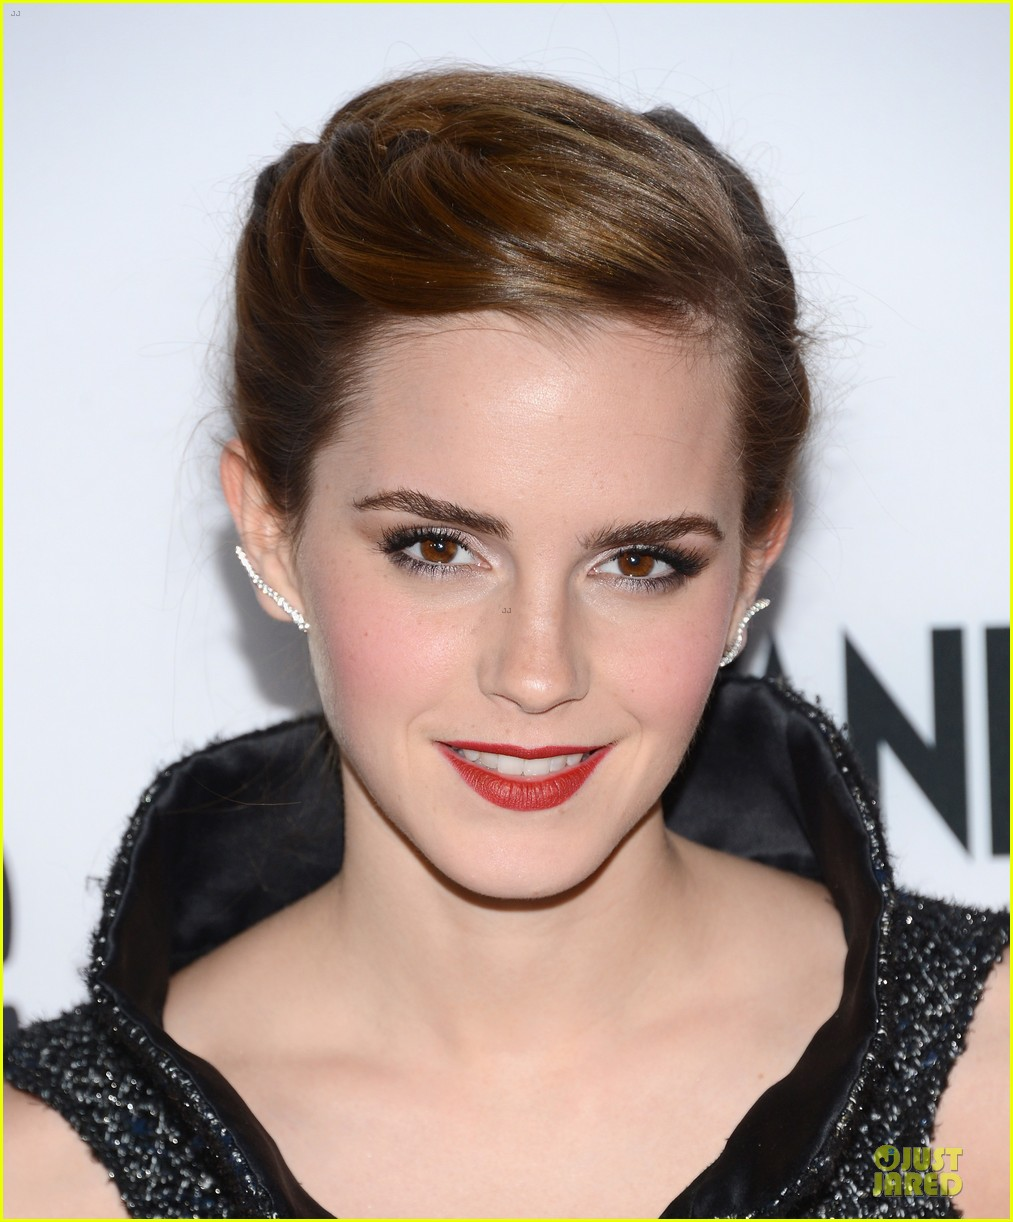 emma watson the bling ring los angeles premiere 072884683